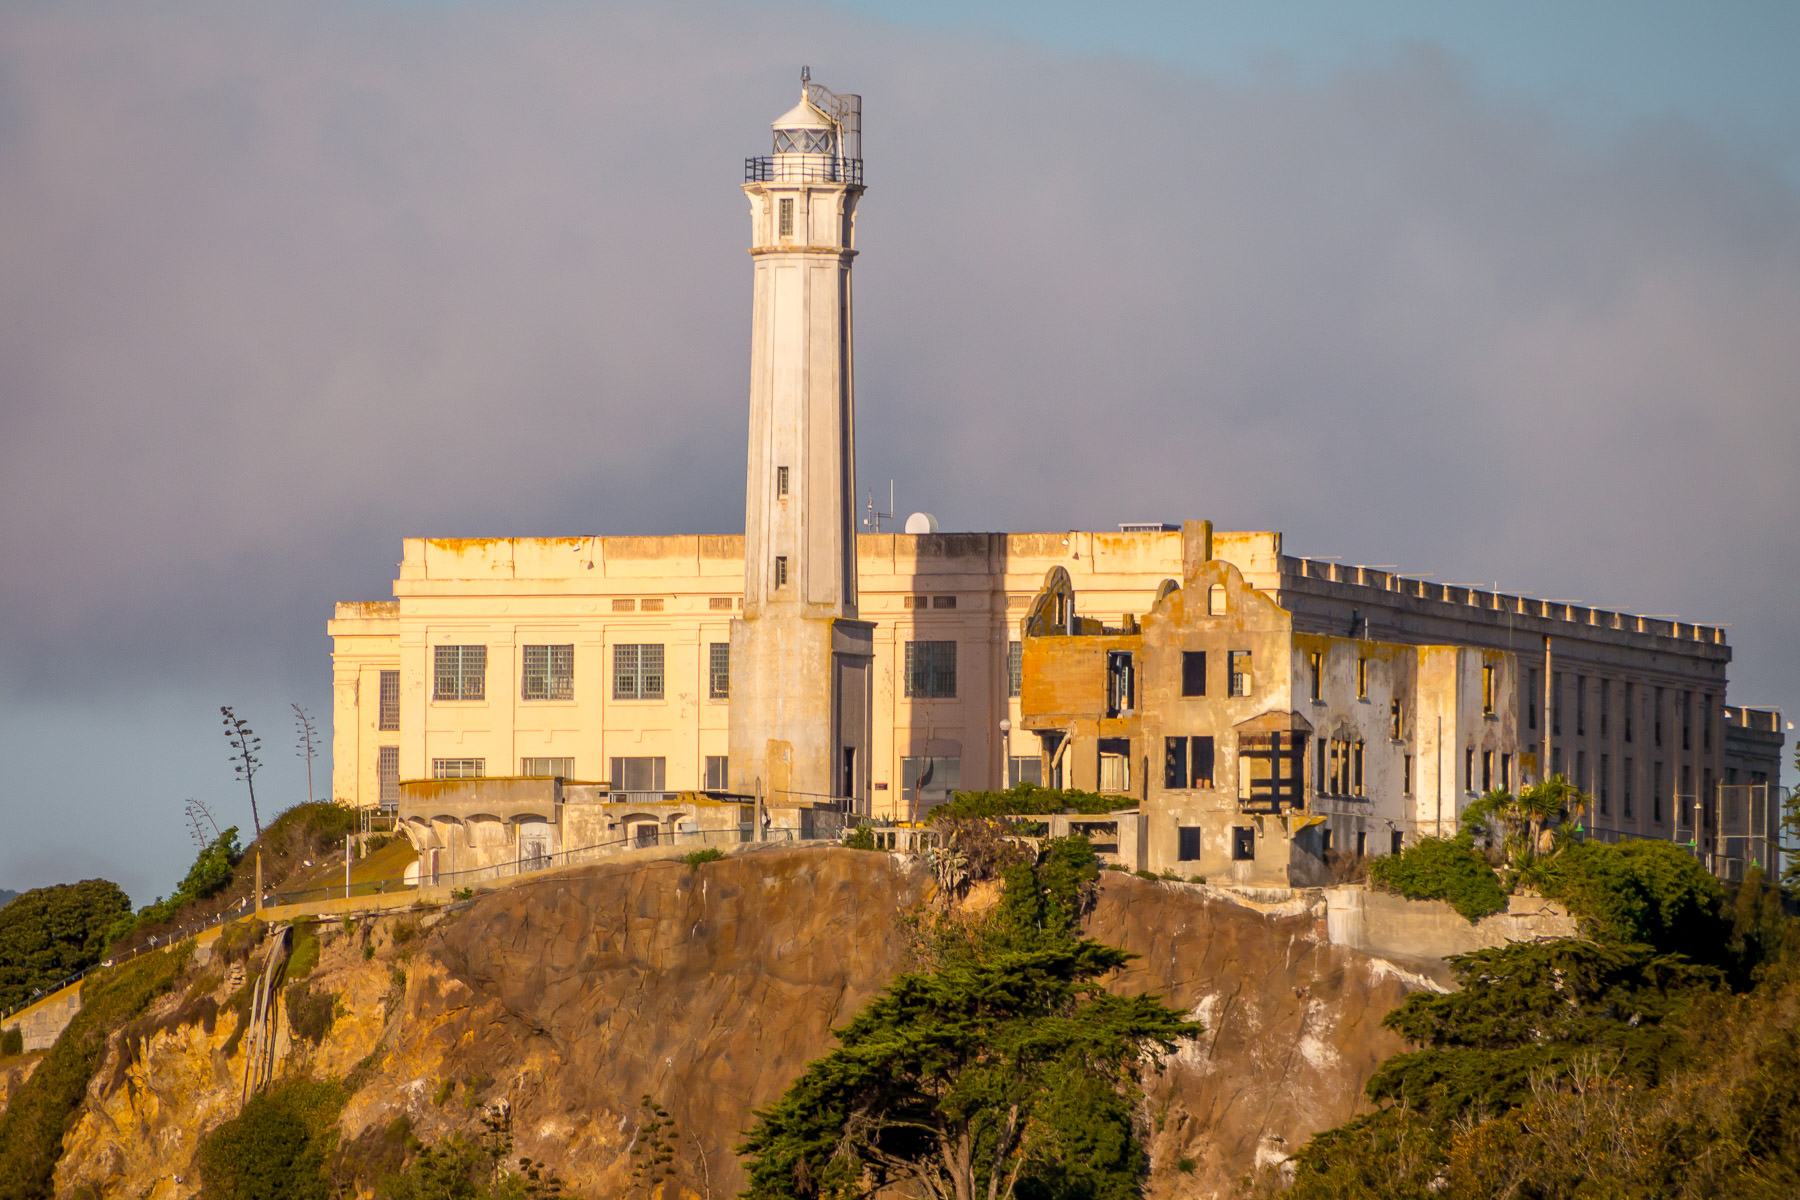 The Alcatraz Island Light catches the morning sun as it rises above the crumbling remains of the long-closed Alcatraz Federal Penitentiary, San Francisco.